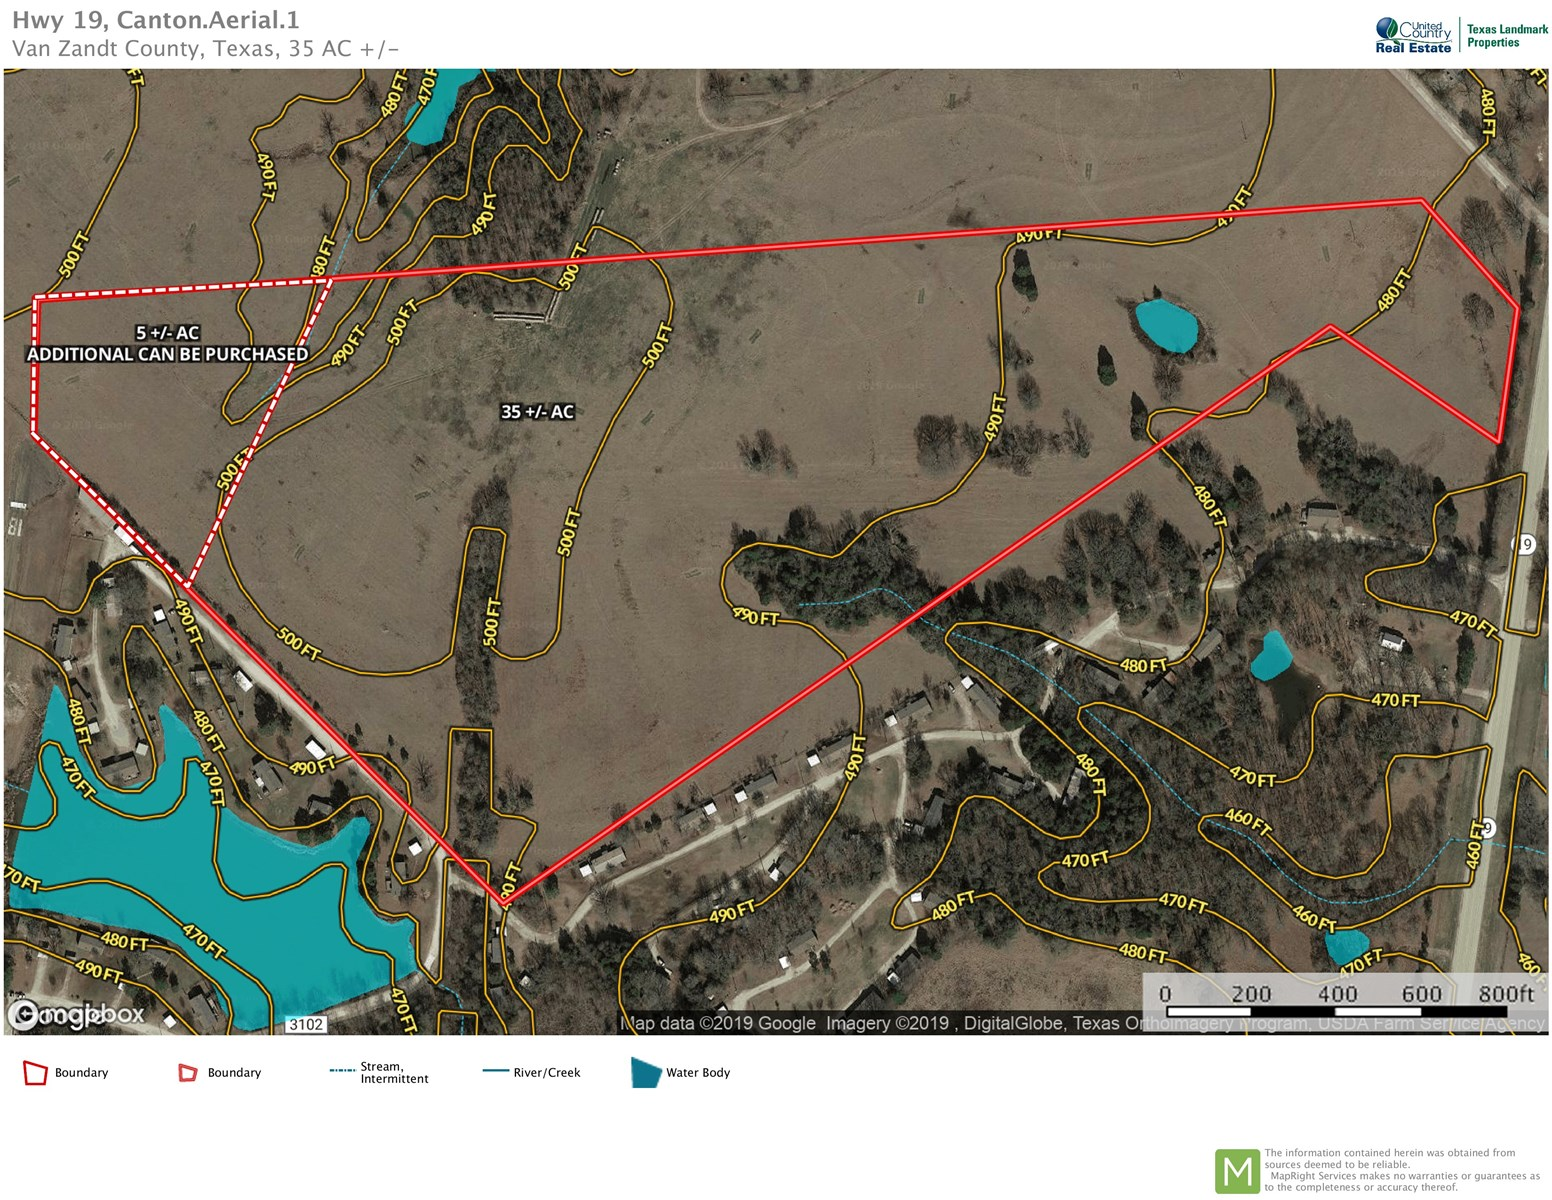 COMMERCIAL LAND FOR SALE IN CANTON, TEXAS on stillwater tx map, leland tx map, kosciusko tx map, mcalester tx map, cranfills gap tx map, new berlin tx map, avondale tx map, seattle tx map, boston tx map, natchitoches tx map, biloxi tx map, brooklyn tx map, waverly tx map, rio rancho tx map, springfield tx map, nashville tx map, arnett tx map, mapquest tx map, goodland tx map, tyler tx map,